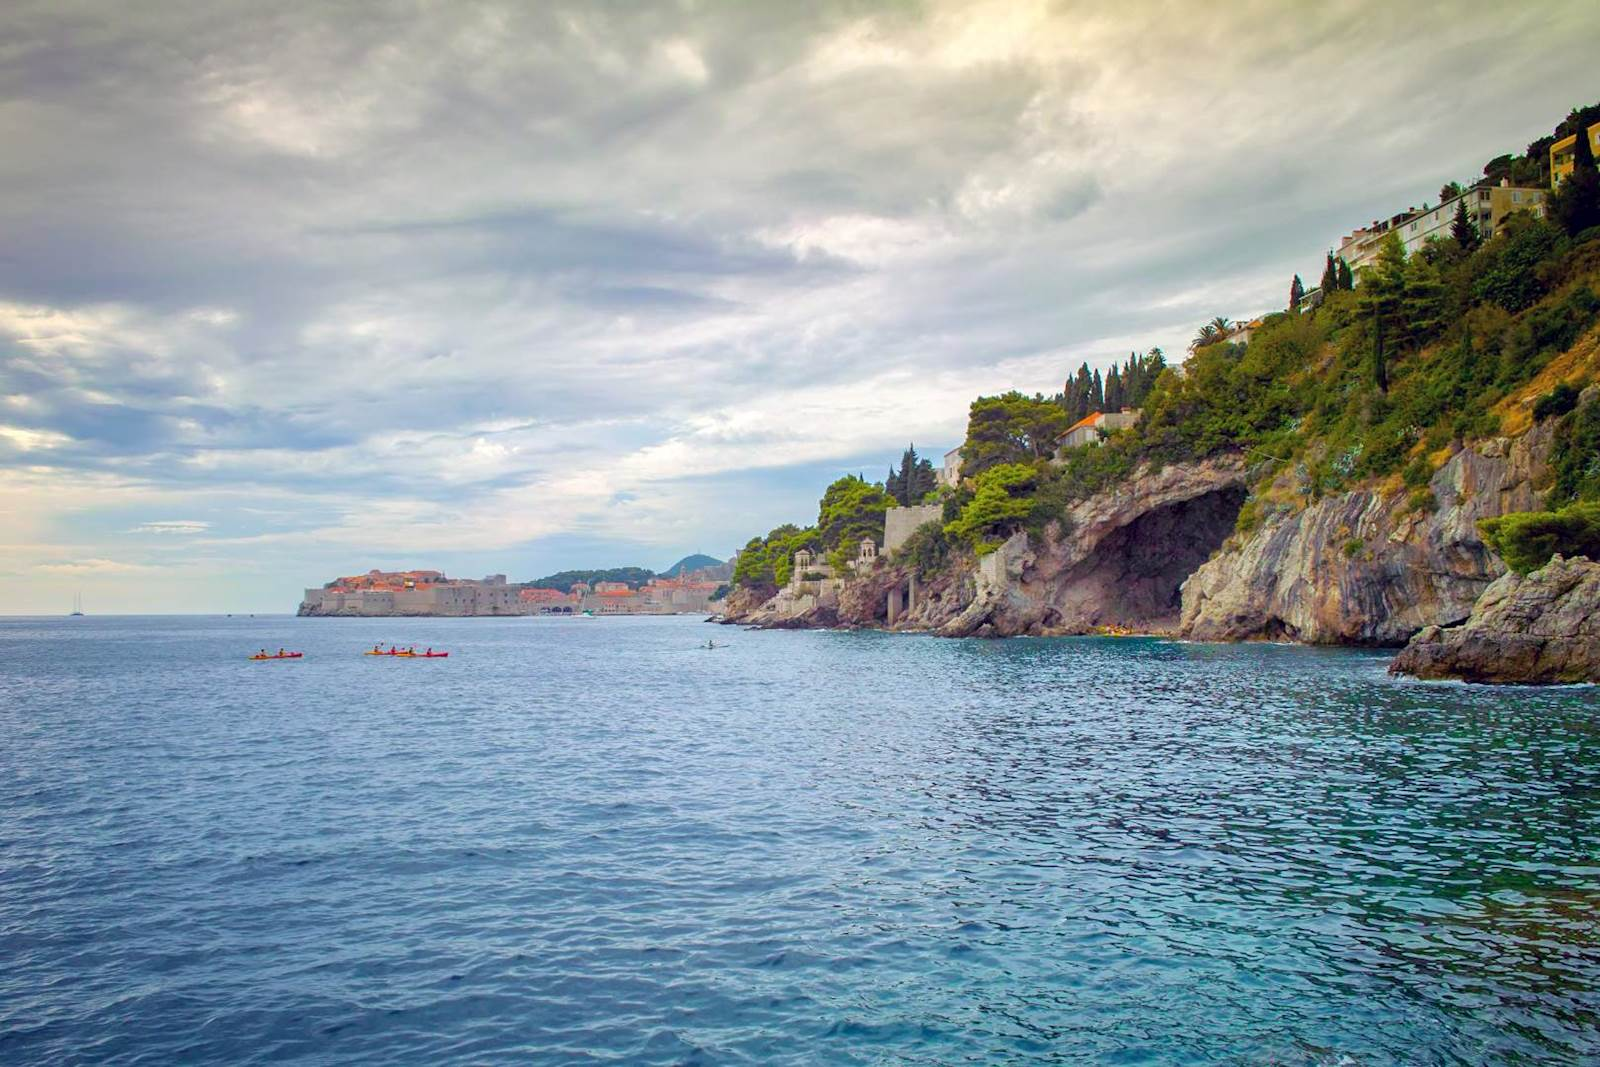 -images-excursions-elaphite-islands-speed-boat-excursion--z-03-03-private-boat-tour-island-sipan-elafiti-dubrovnik-panorama.jpg